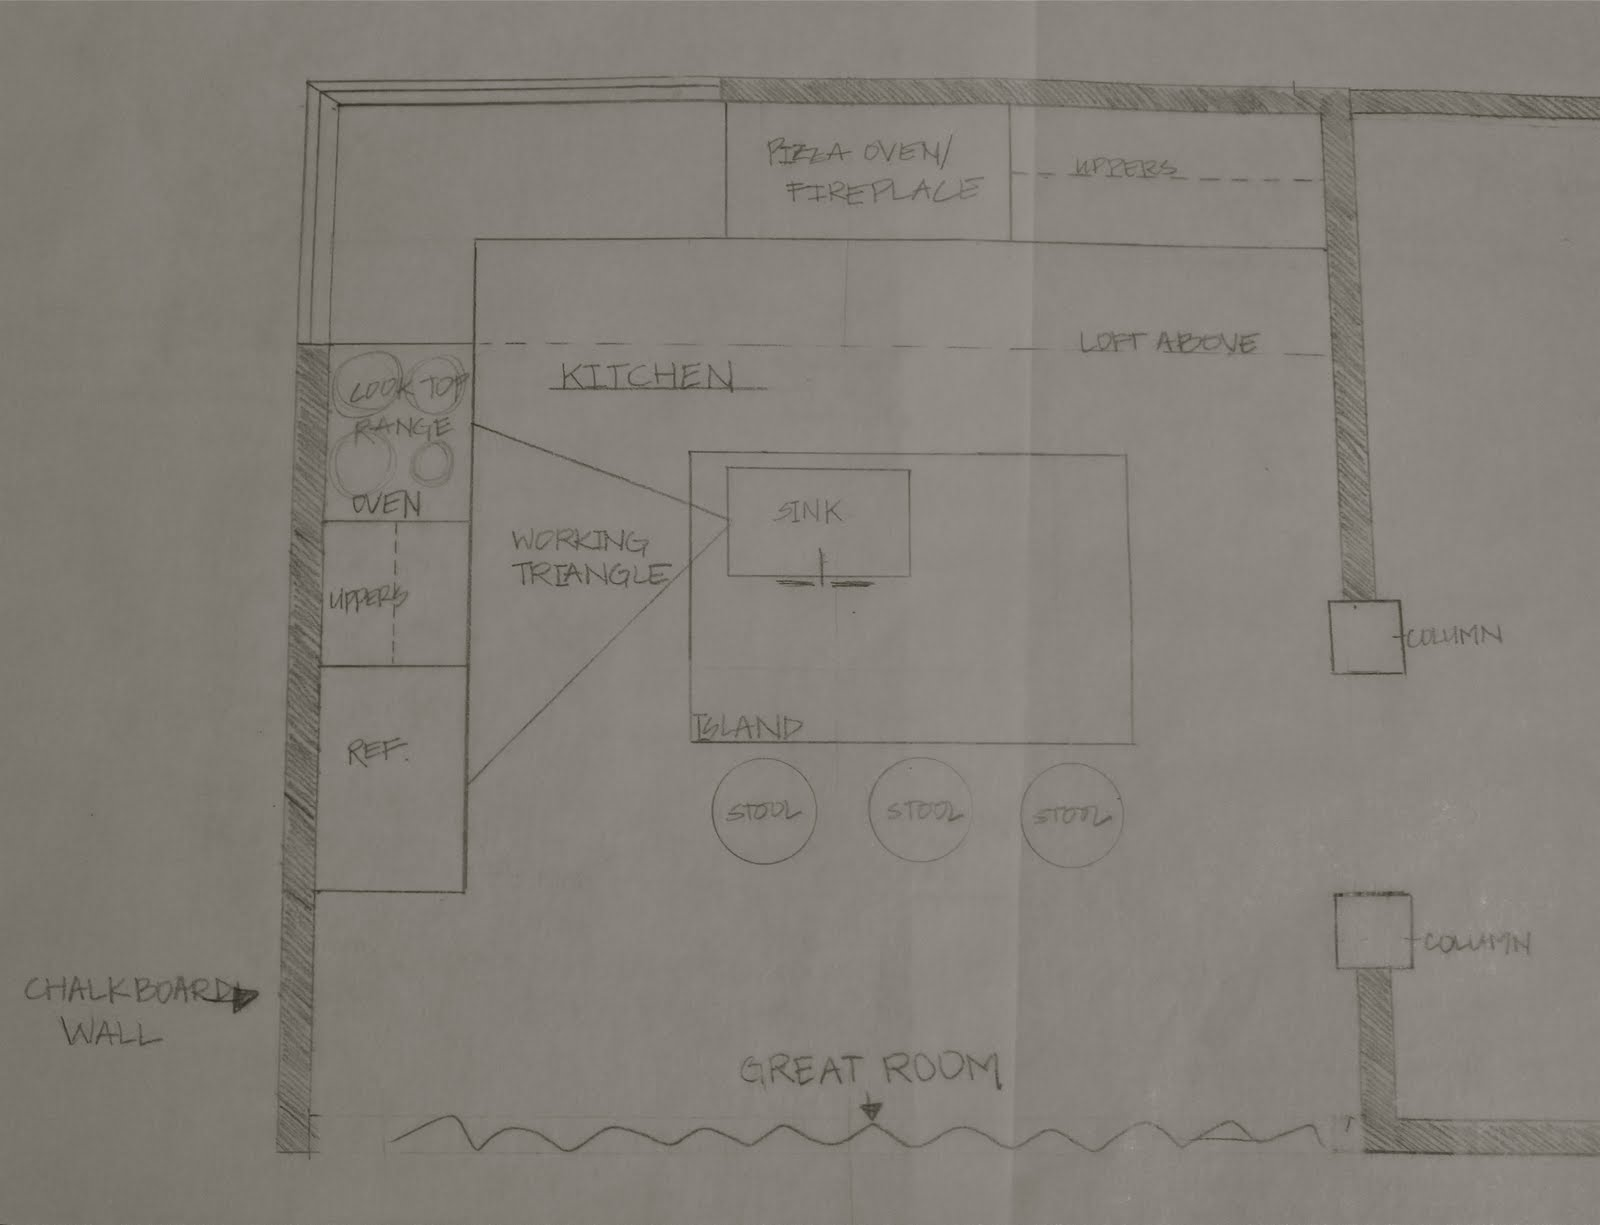 An elevation is just a flat drawing of one wall of the room my elevation is the north wall in the above floor plan